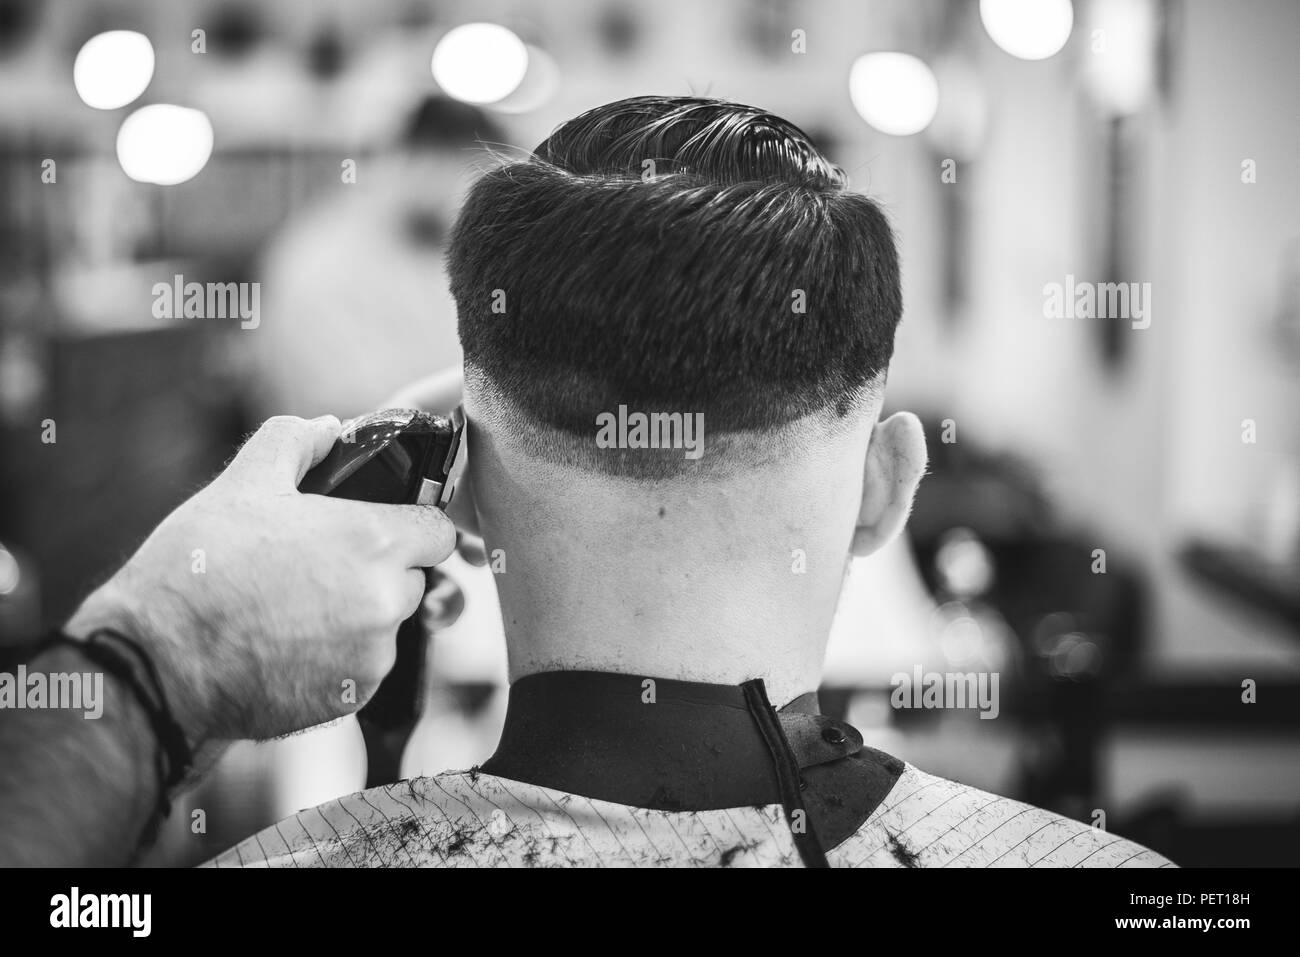 Man hairdresser doing hairstyle with hairdryer and comb a man with a beard - Stock Image